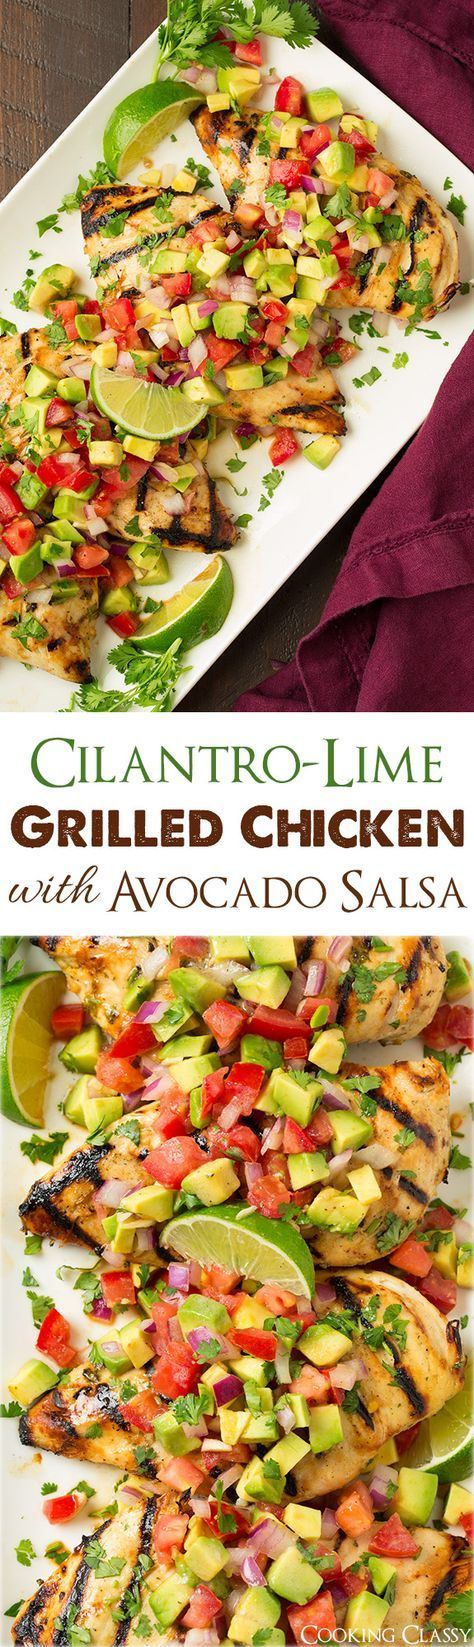 Grilled Cilantro Lime Chicken with Avocado Salsa - easy to prepare, healthy, amazingly flavorful and delicious! Anything is good when you add avocado right?